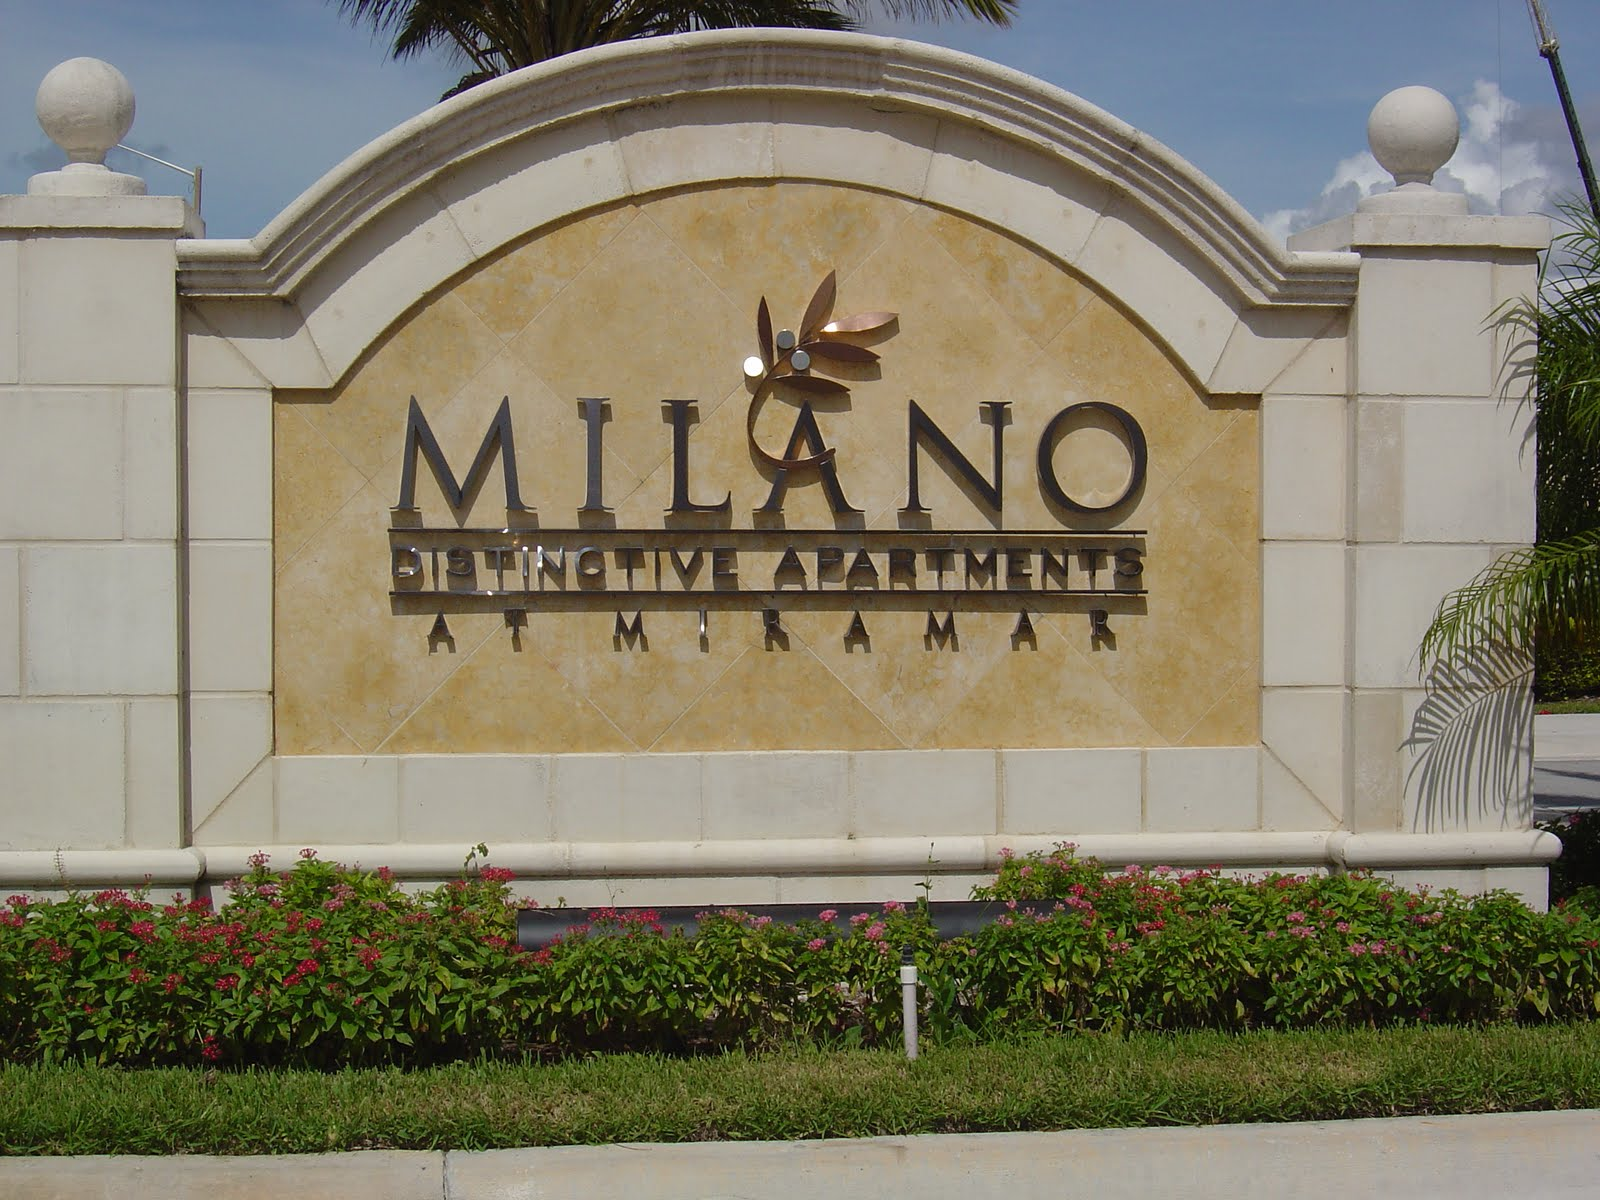 City of miramar florida milano distinctive apartments for The miramar